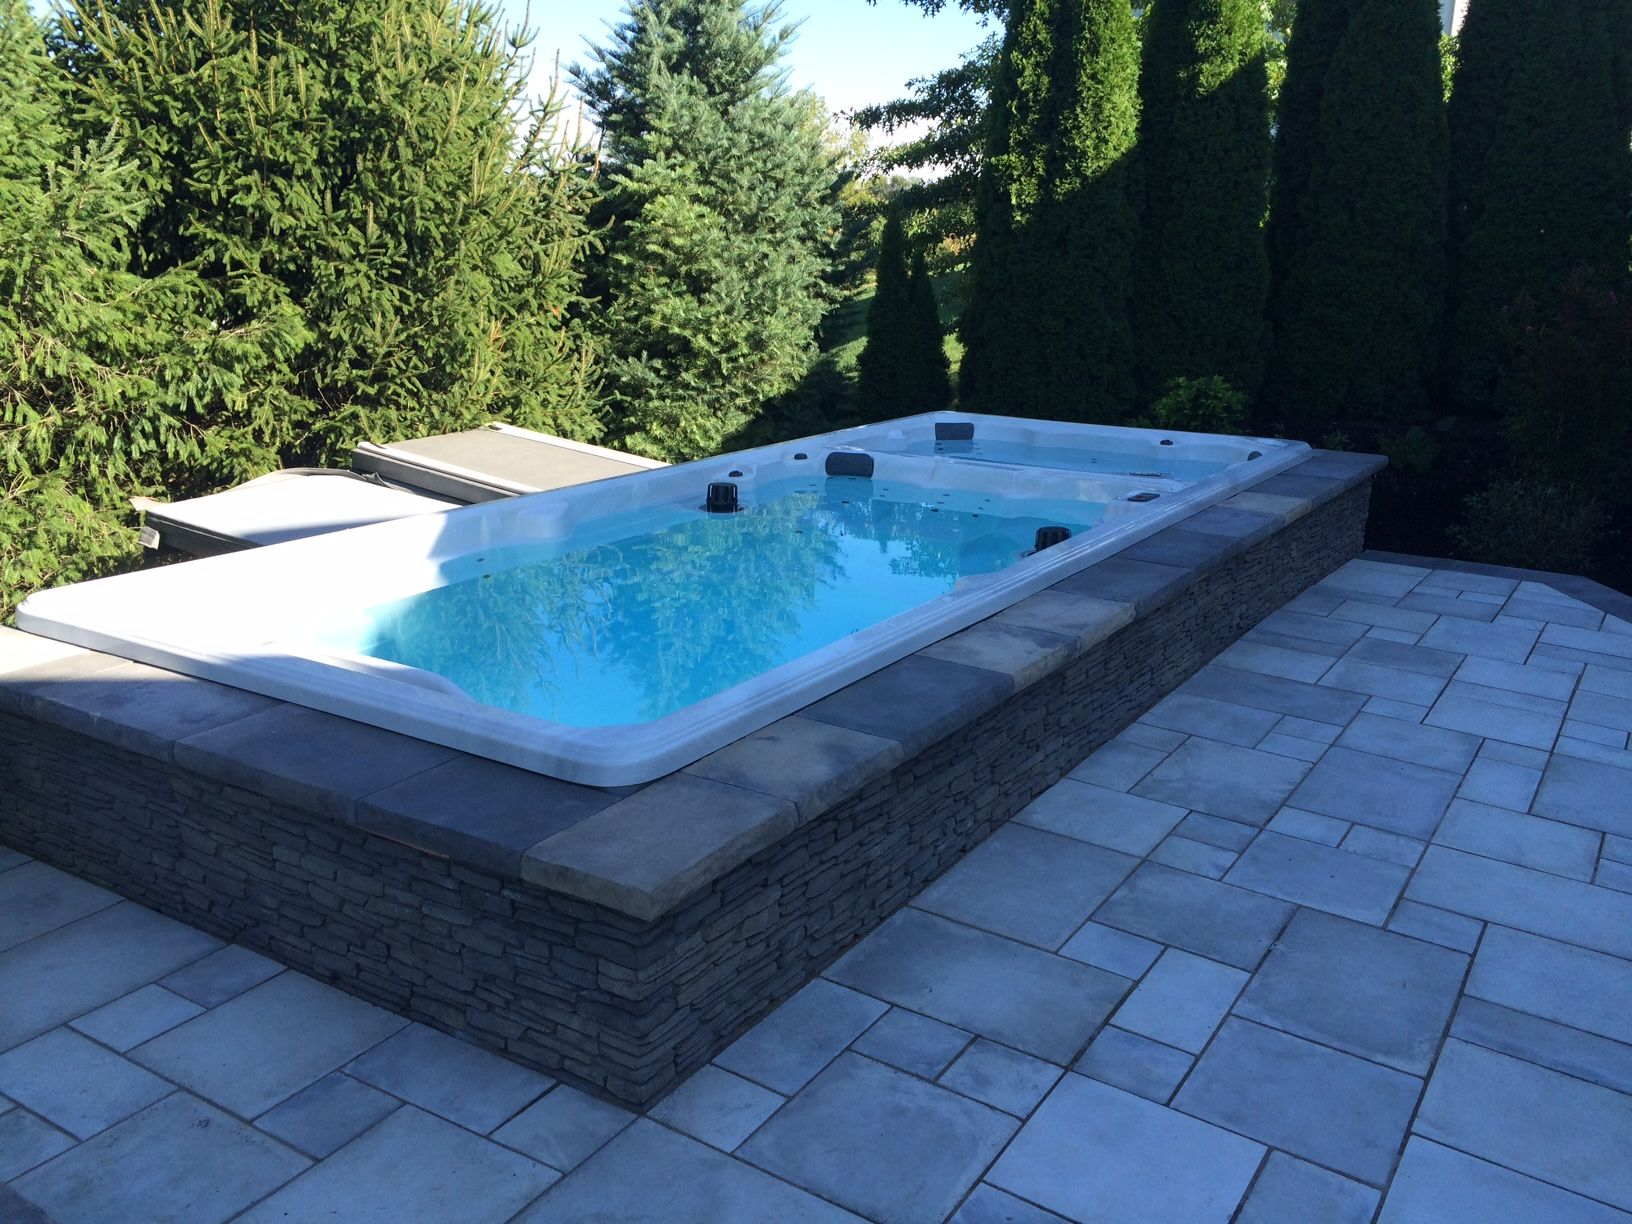 Honey swim spa 19 footer in new patio swim spa deck for Spa swimming pool